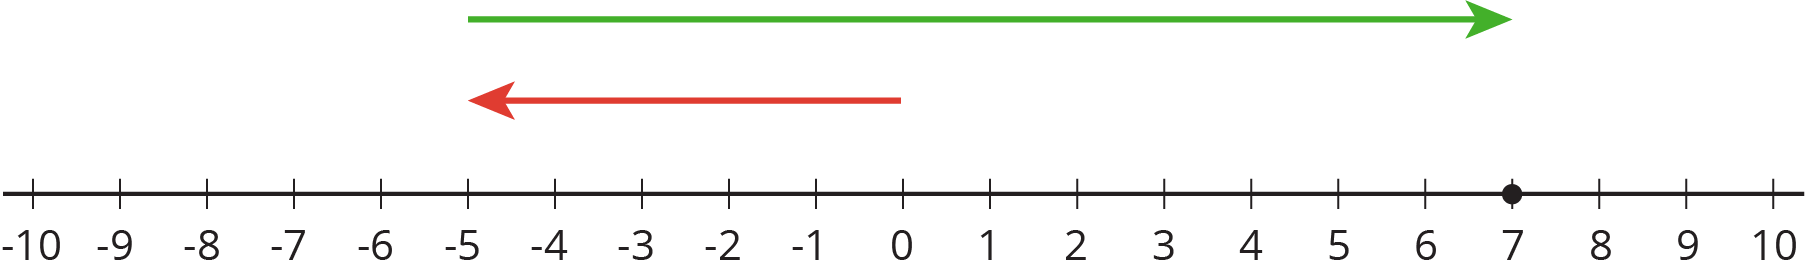 A number line with the numbers negative 10 through 10 indicated. An arrow starts at 0, points to the left, and ends at negative five. A second arrow starts at negative five, points to the right, and ends at 7. There is a solid dot indicated at 7.